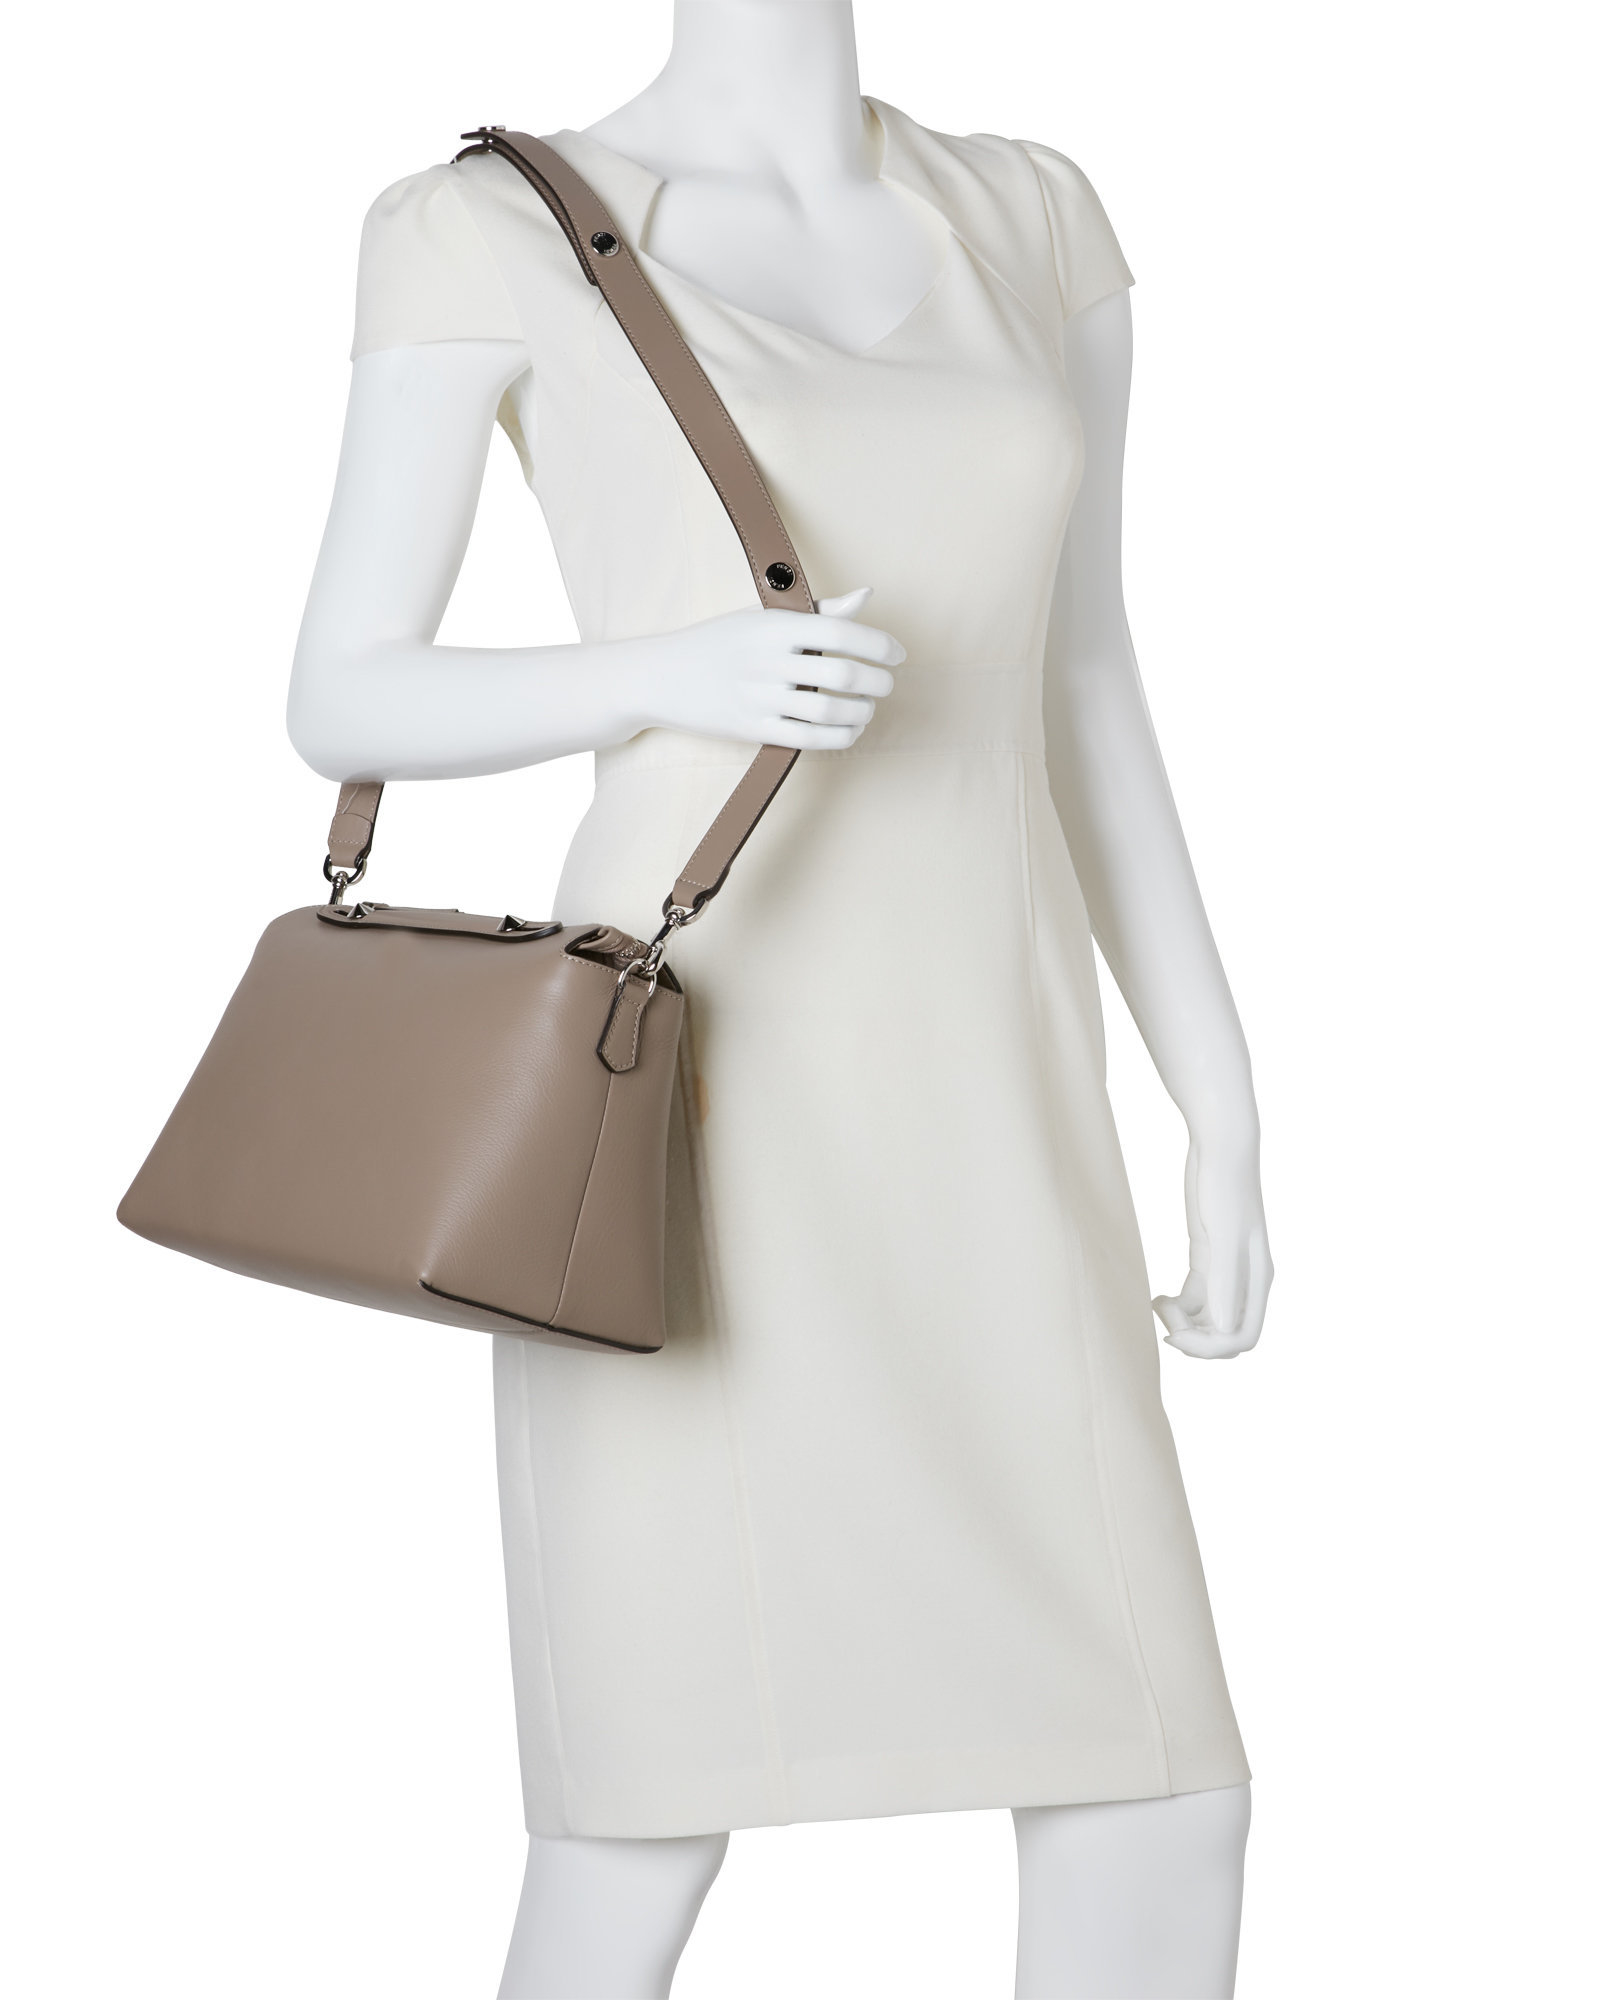 Lyst - Fendi Dove Grey By The Way Large Satchel in Gray 559275b889482